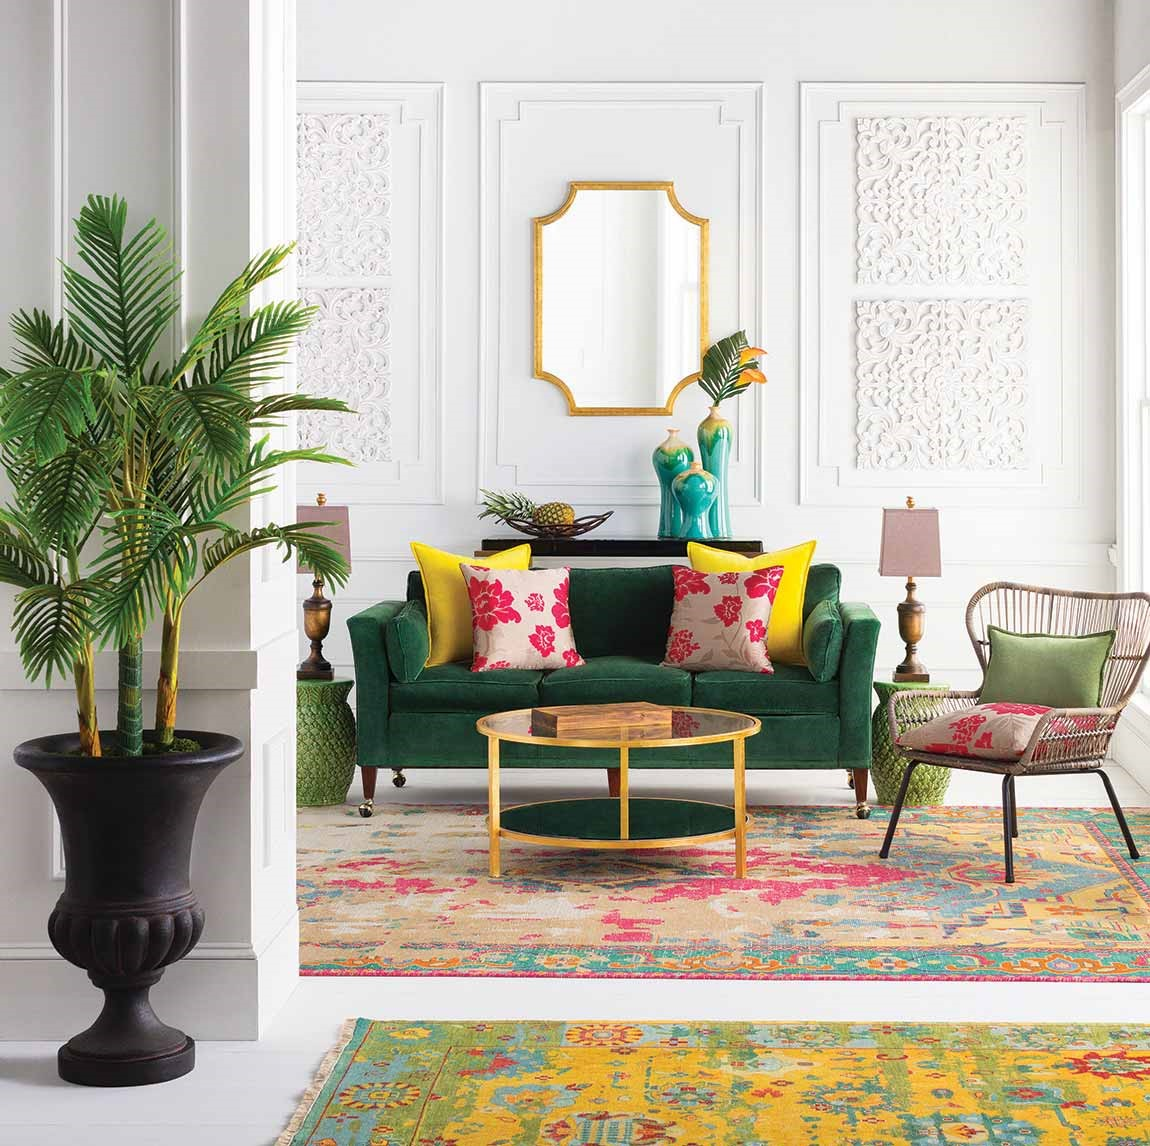 light colored living room with tropical plants-and prints